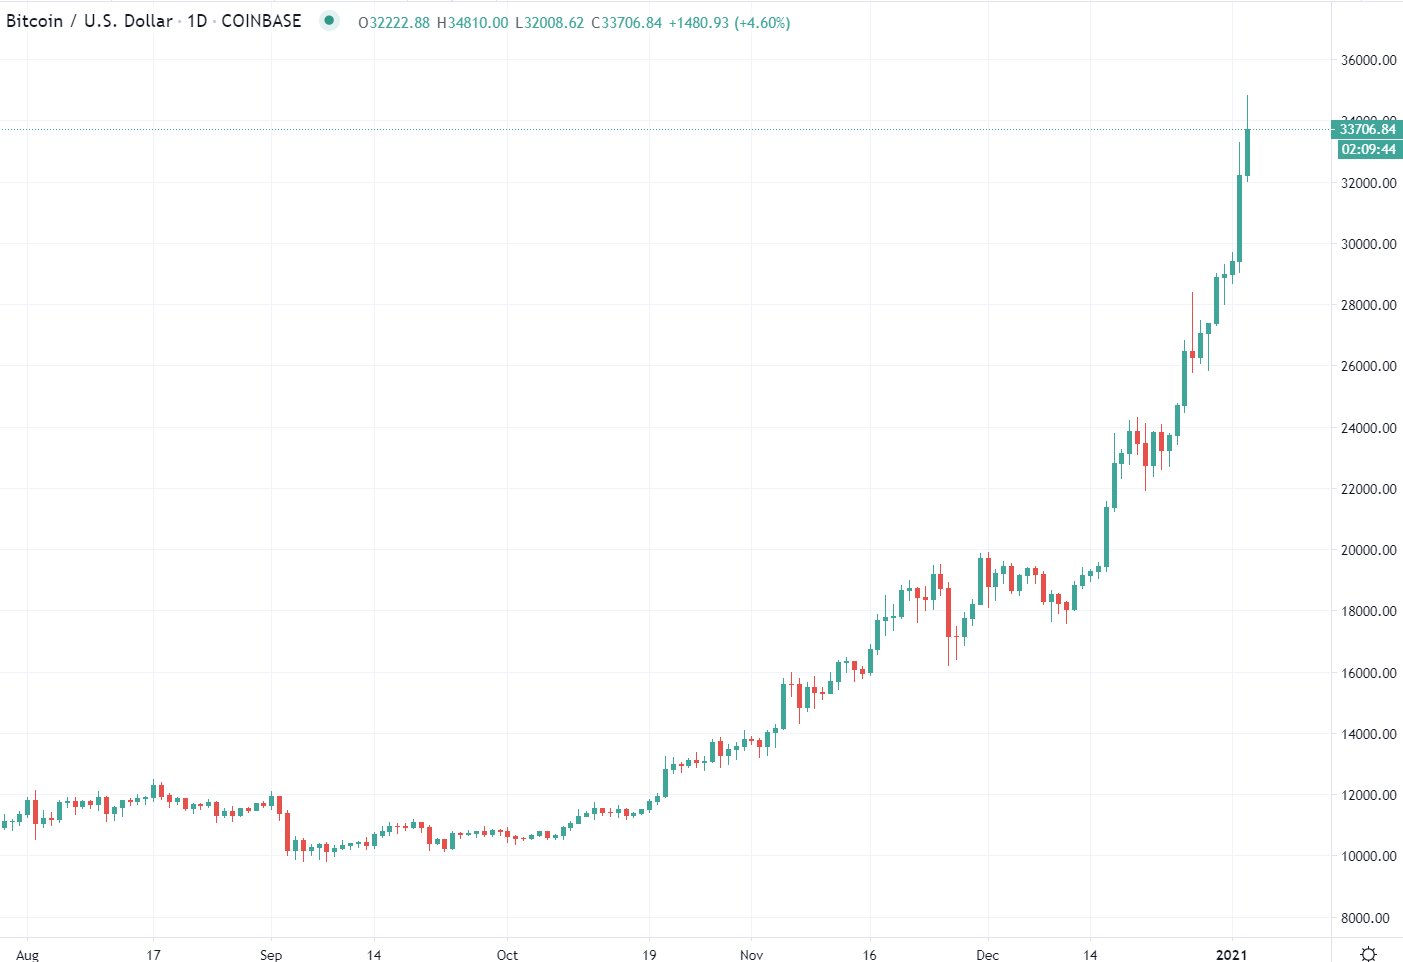 Over the weekend BTC hit $34K (and beyond):